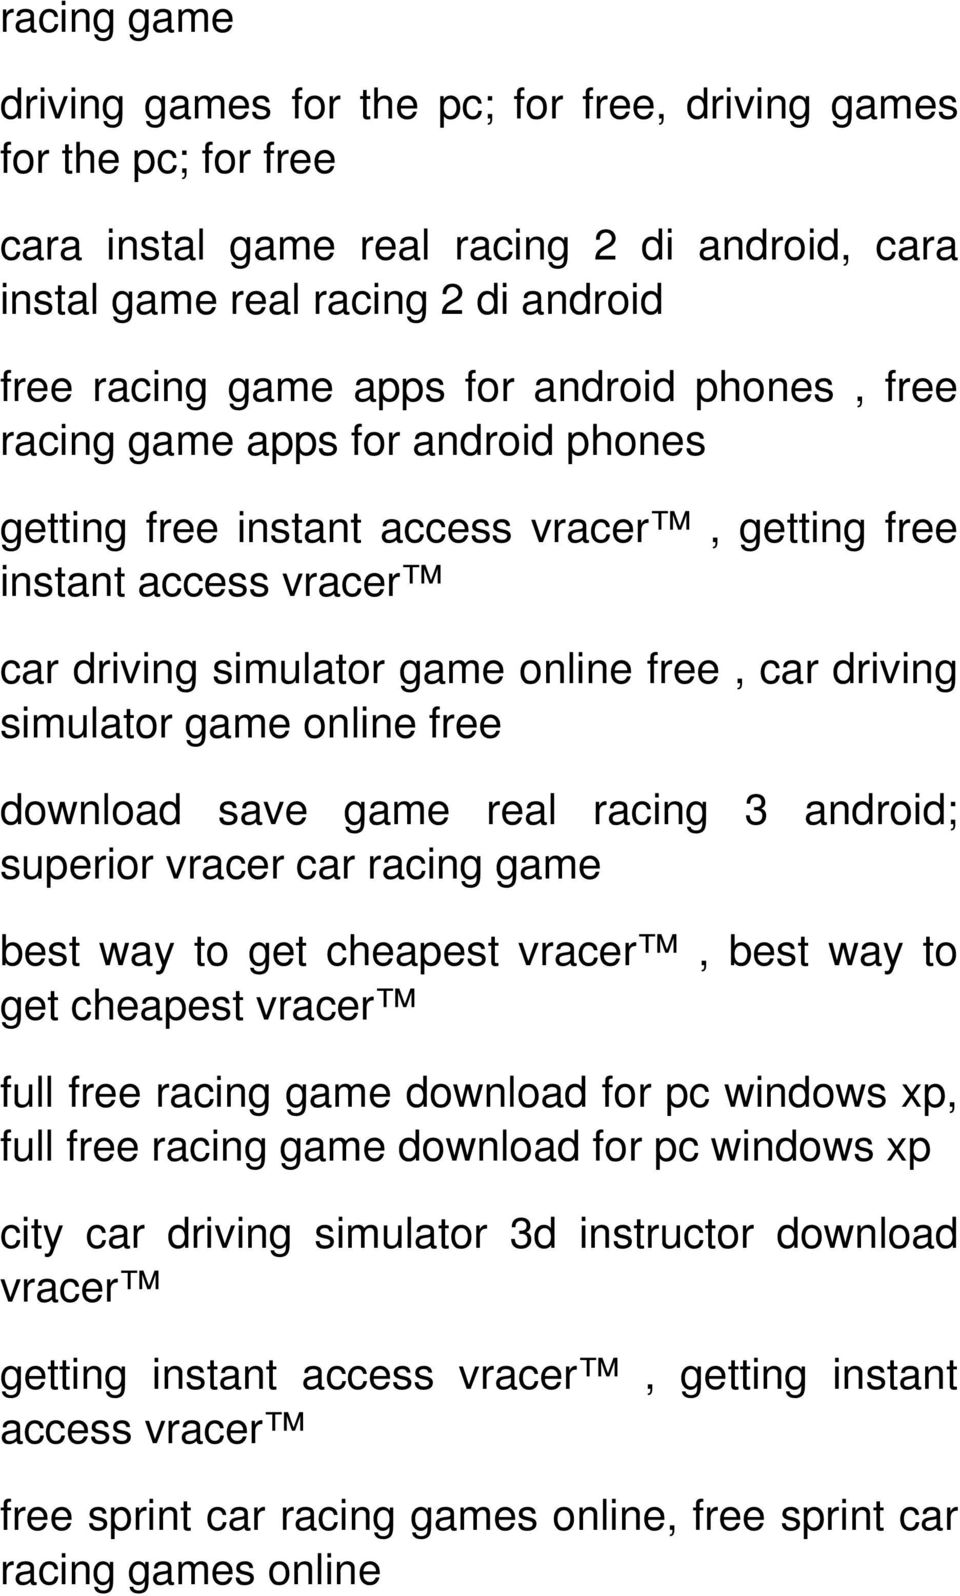 online free download save game real racing 3 android; superior vracer car racing game best way to get cheapest vracer, best way to get cheapest vracer full free racing game download for pc windows